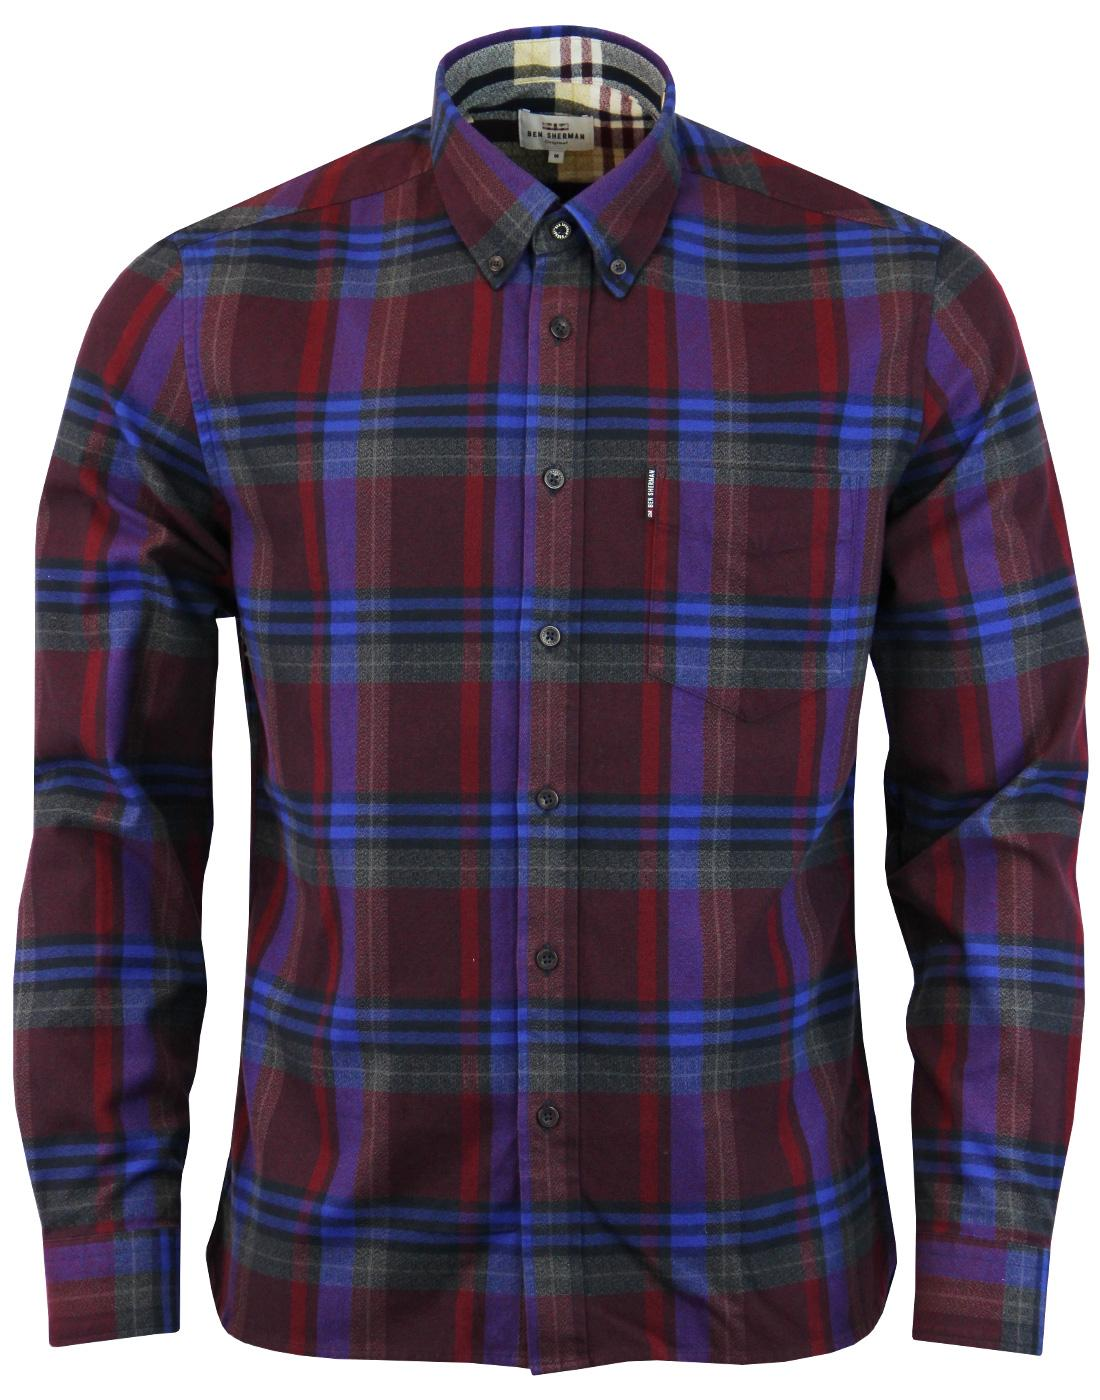 BEN SHERMAN Mens 60s Mod Brushed Crepe Check Shirt